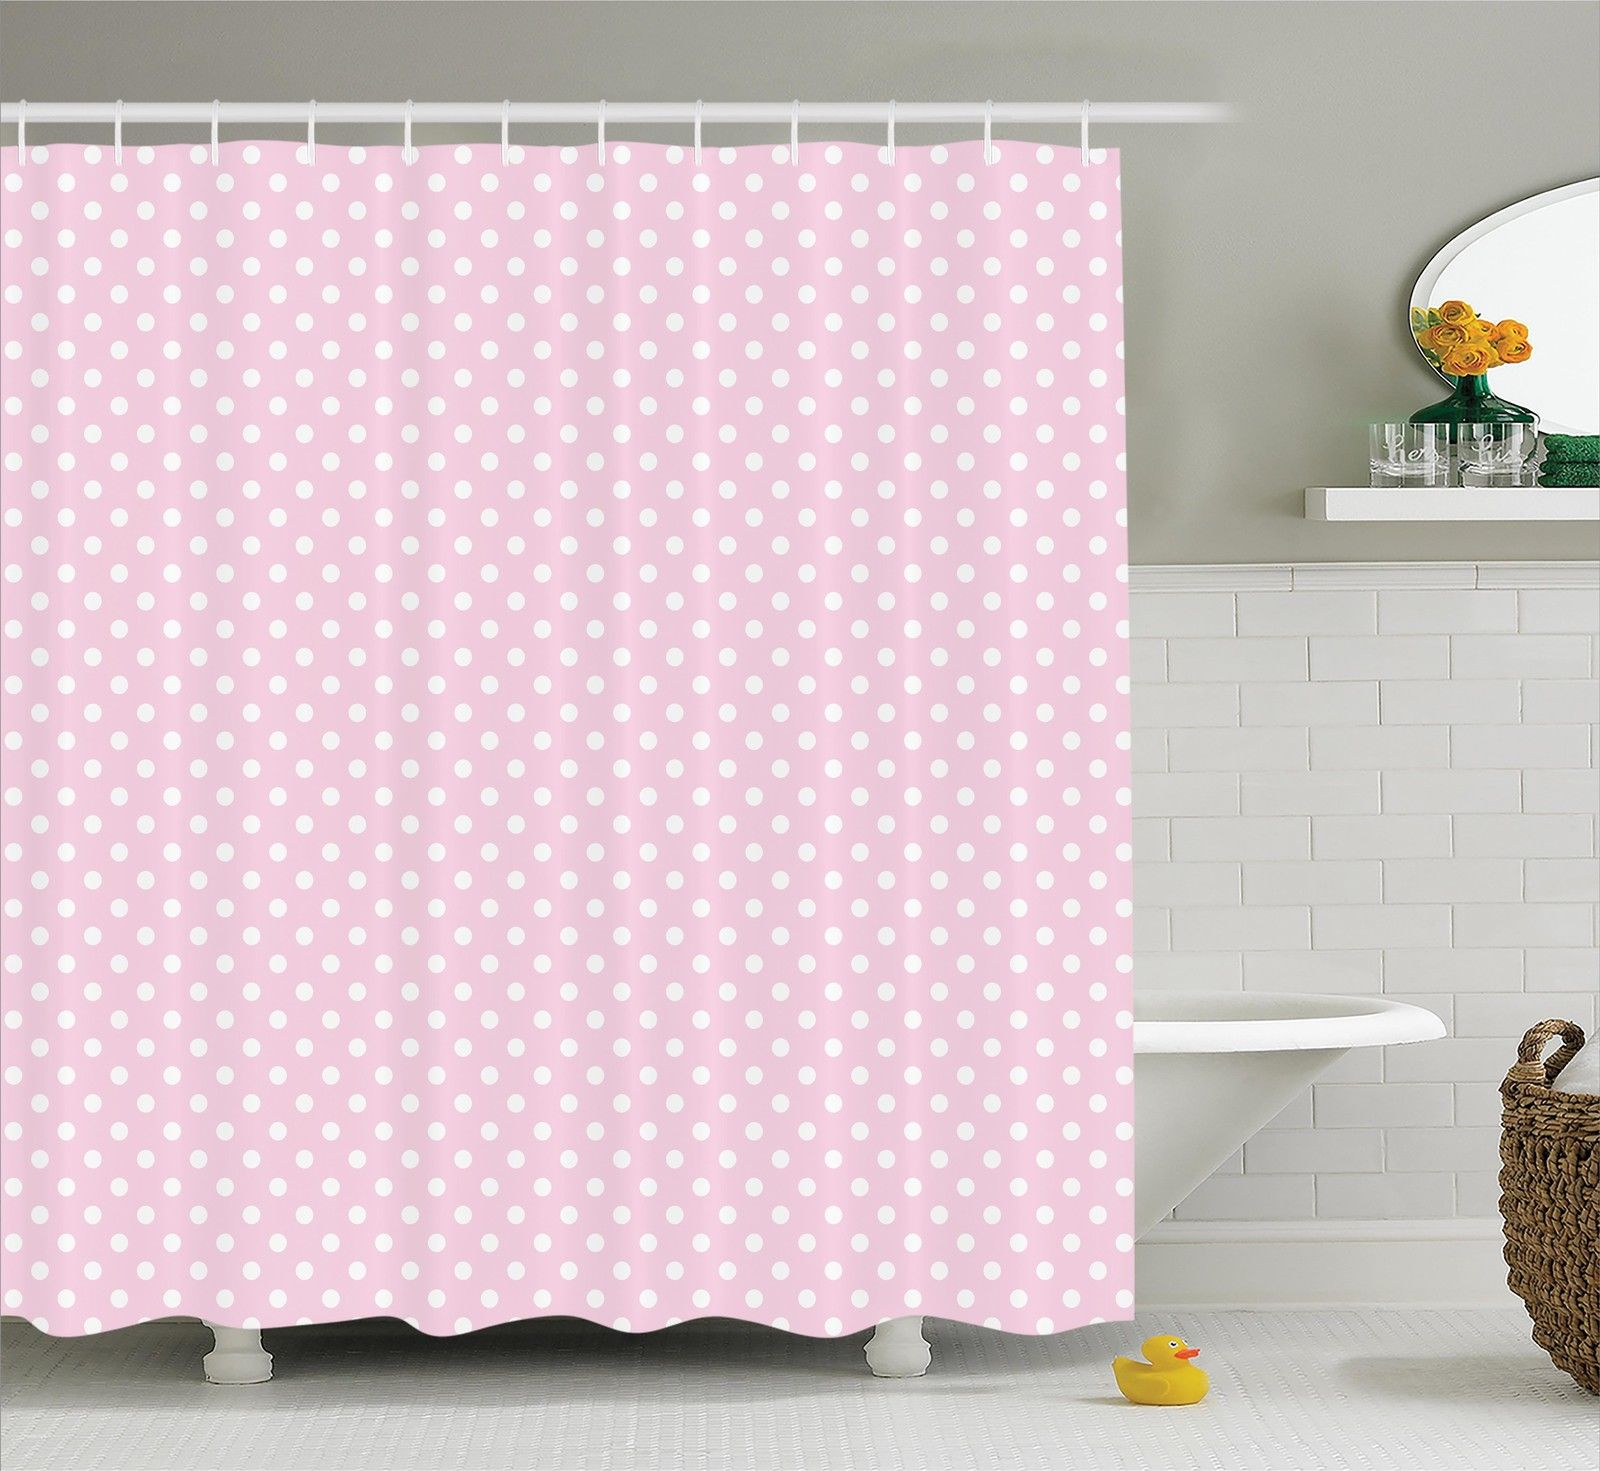 Polka Dots Home Decor Shower Curtain Set, Tiny Little Retro Polka Dots Vintage Style Bridal Nursery Kids Room Pattern, Bathroom Accessories, 69W X 70L Inches, By Ambesonne